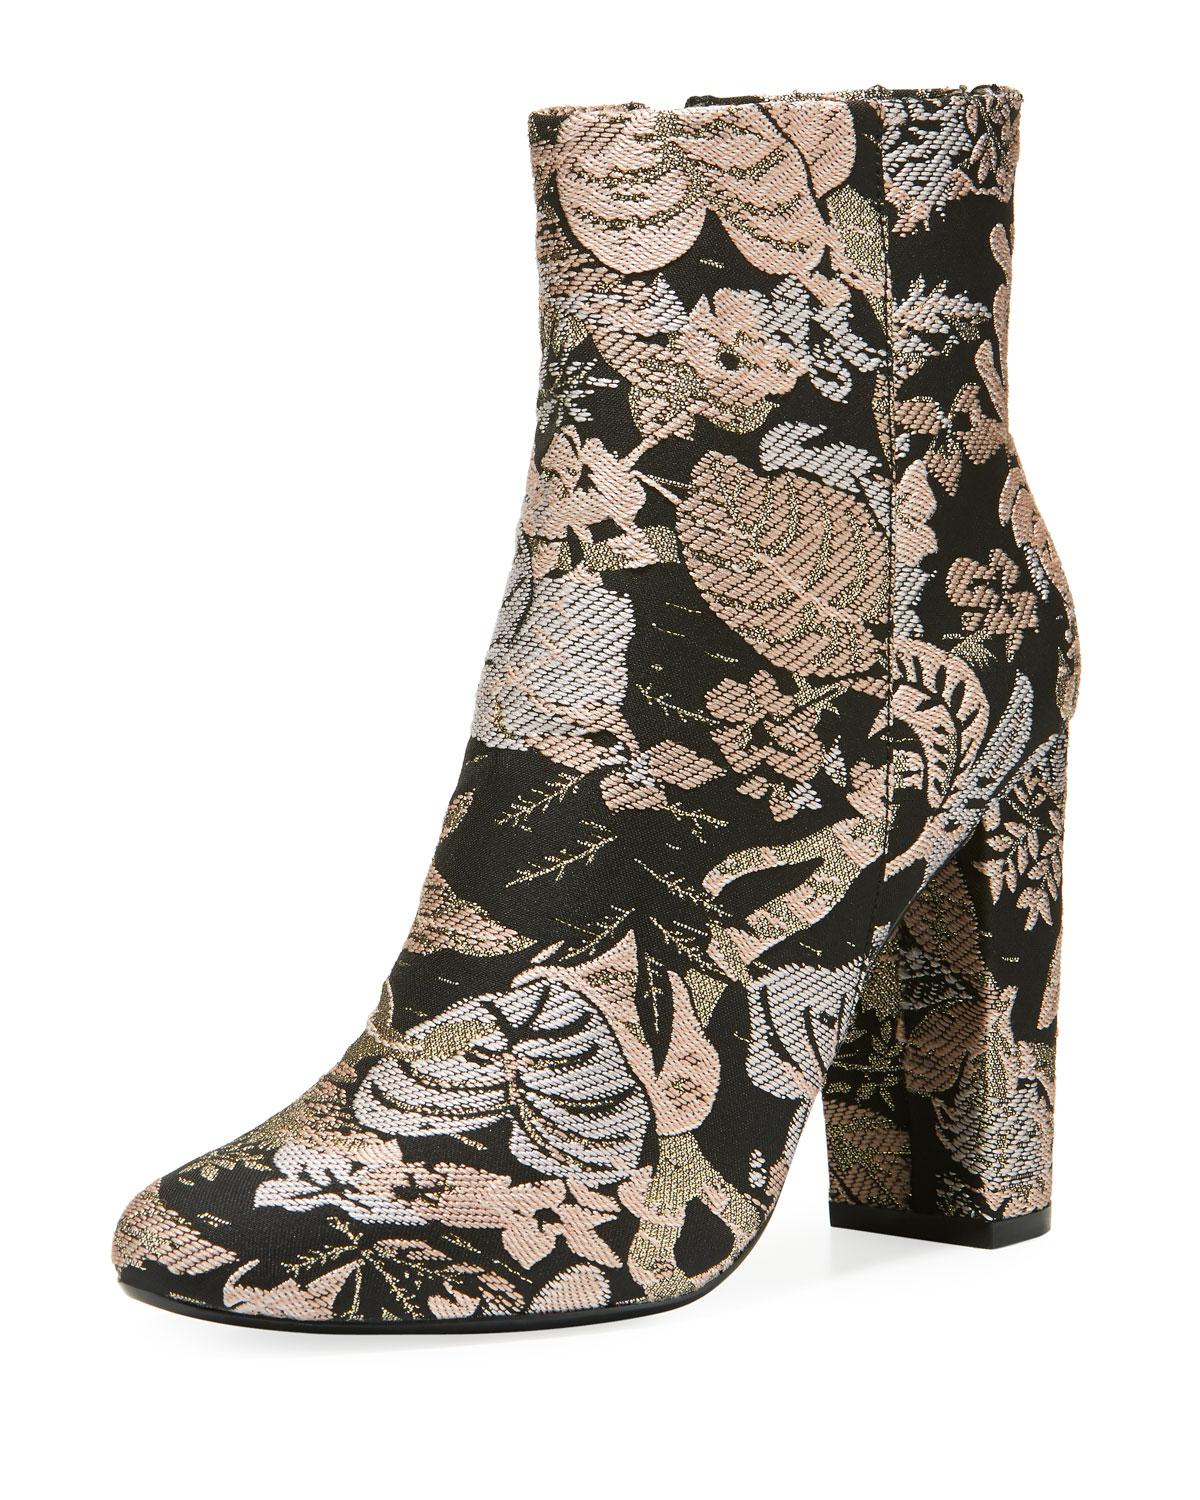 658143a72fd7 Lyst - Neiman Marcus Bucasia Floral Brocade Booties in Black - Save 44%